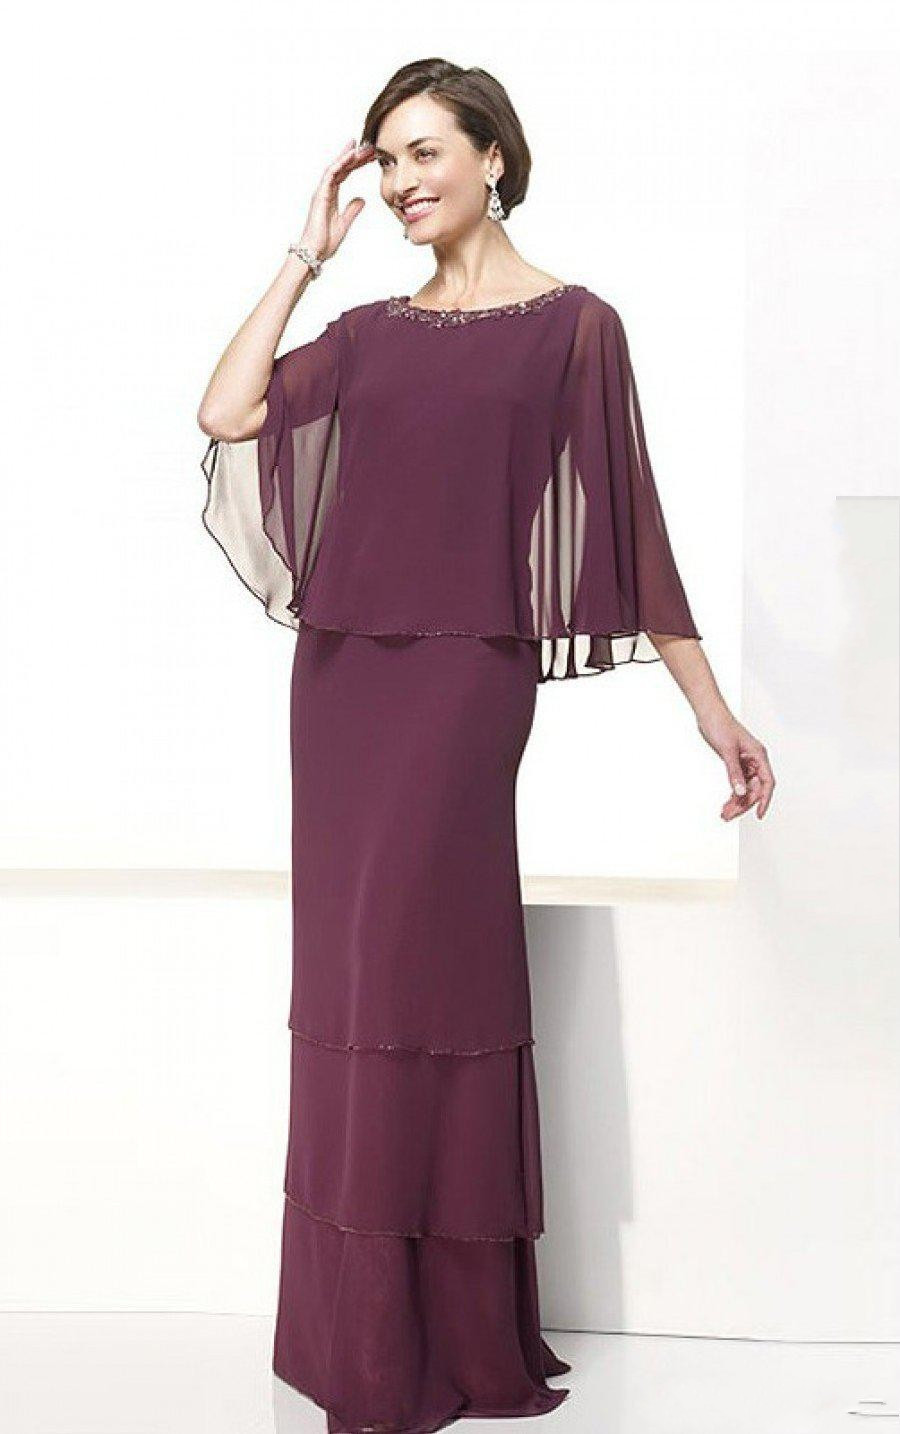 US $115.08 |2019 New Designed Plus Size Long Chiffon Mother Of The Bride  Dresses Floor Length Beaded Groom Mother Dress Wedding Party Gowns-in  Mother ...